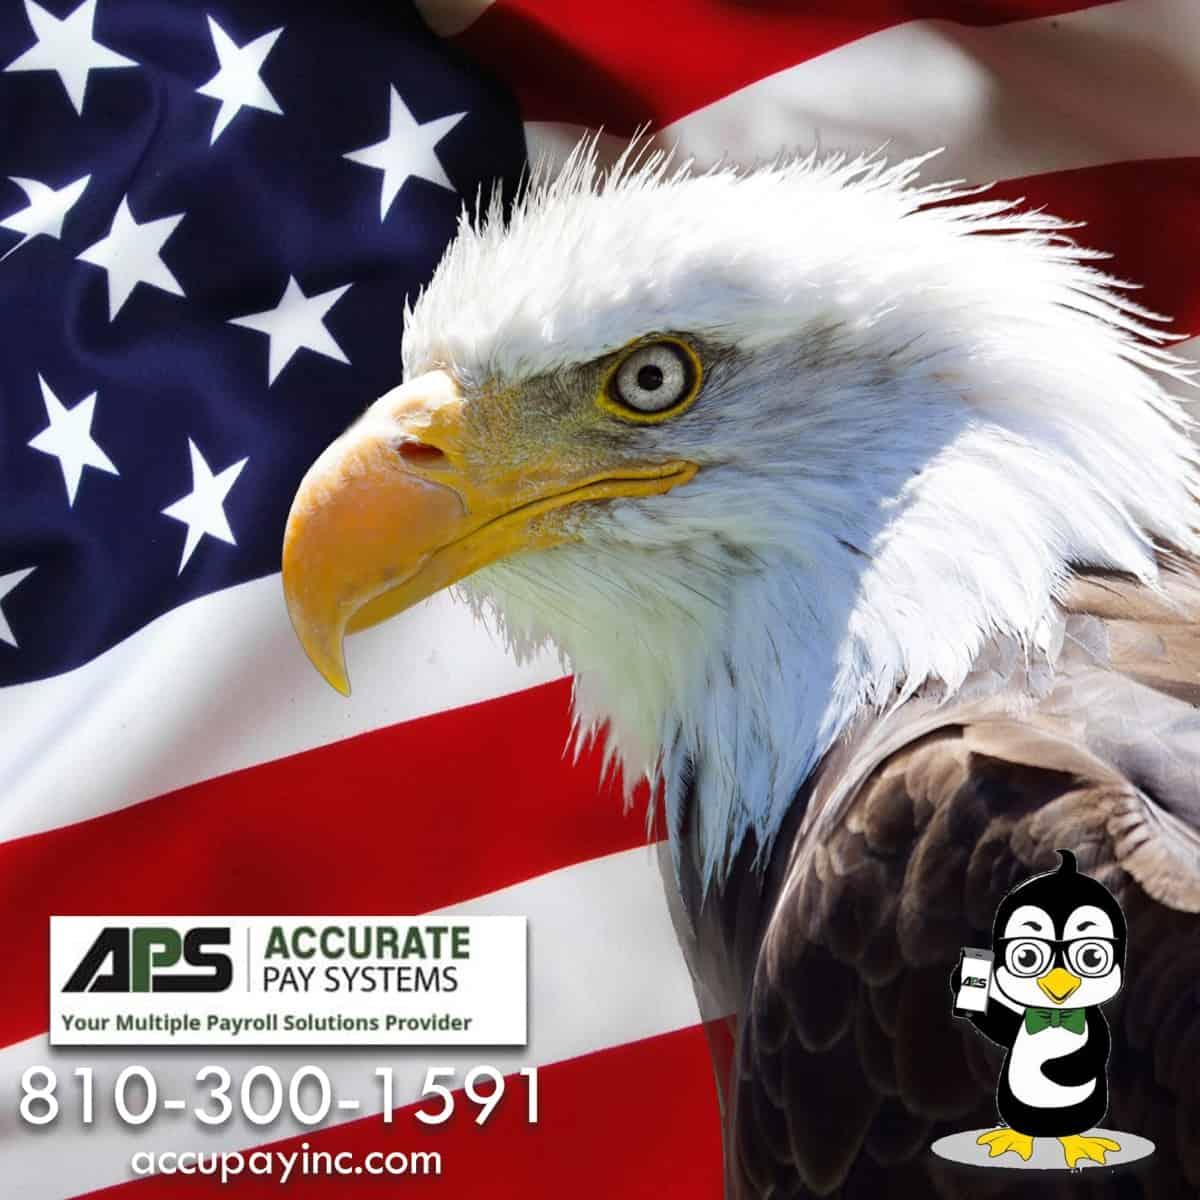 American Flag and Bald Eagle with Accurate Pay Systems Logos